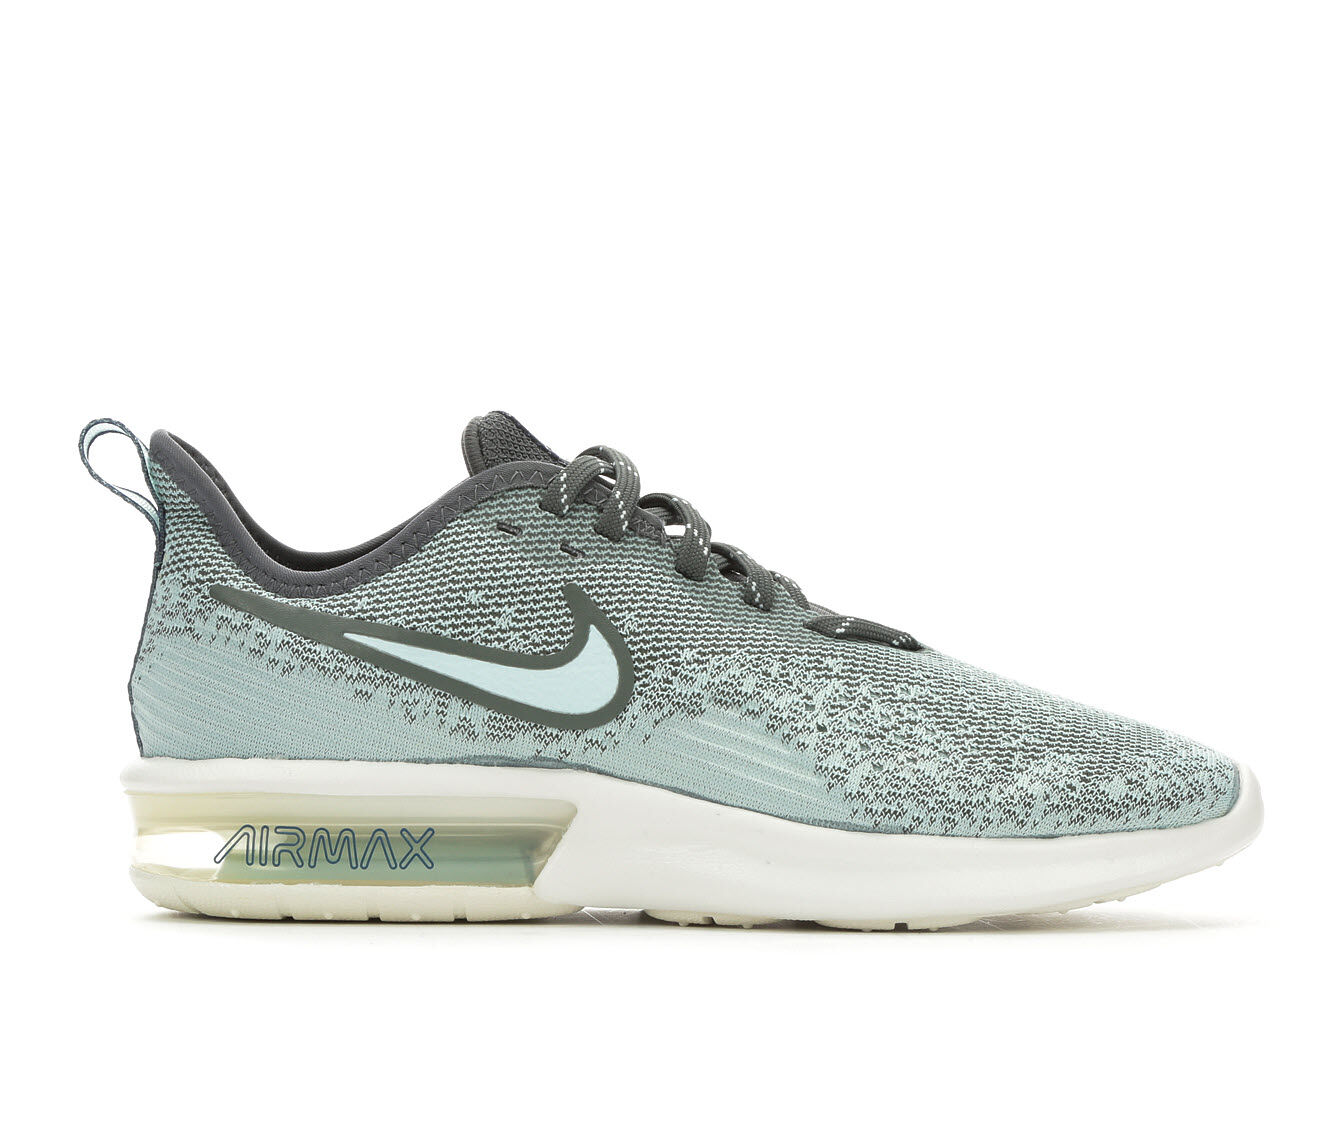 Carries New Women's Nike Air Max Sequent 4 Running Shoes Green/Teal/Wht